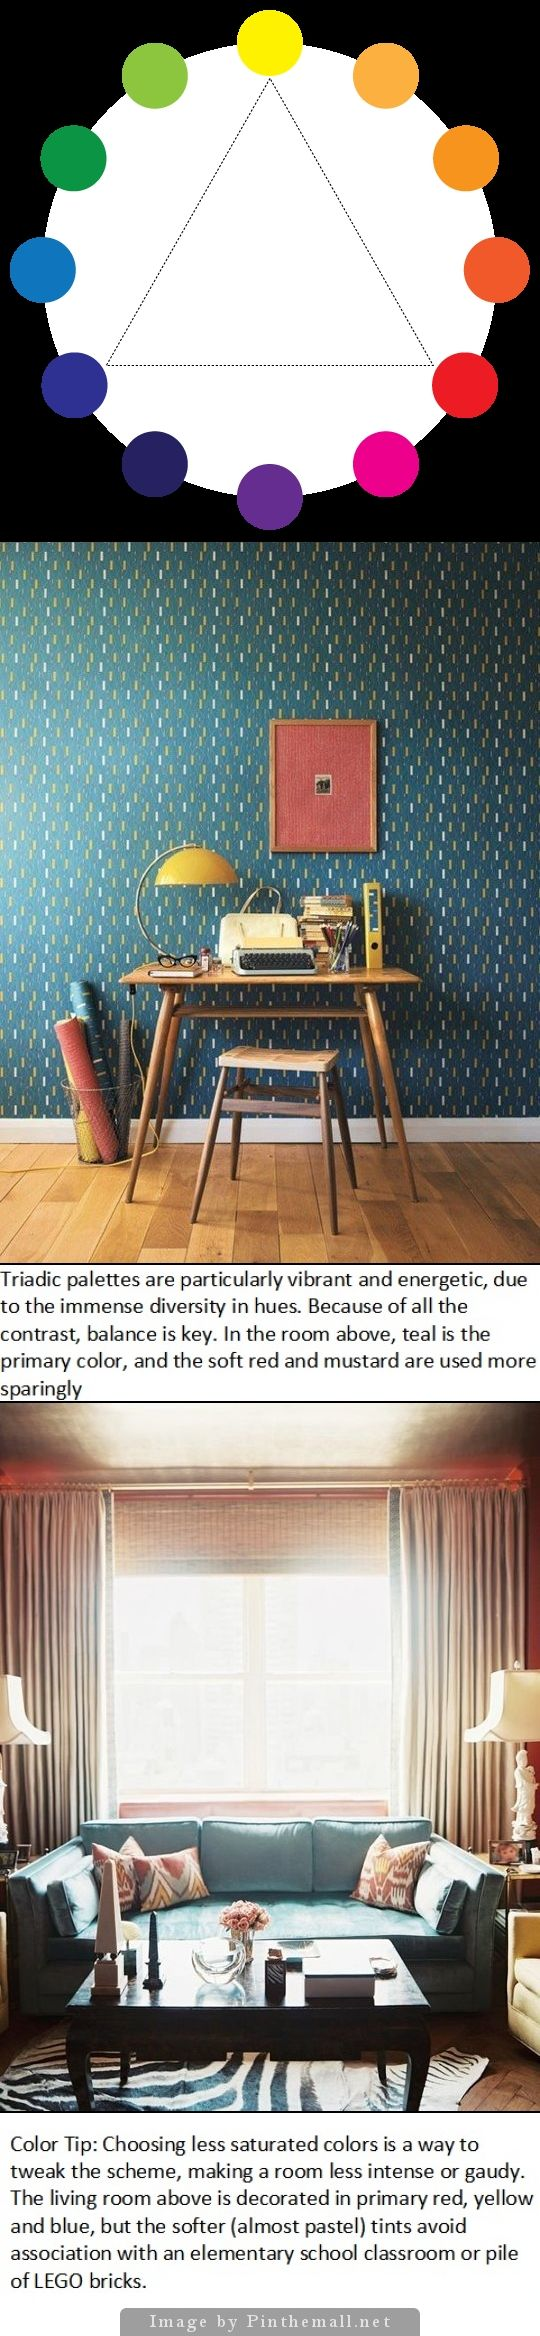 The Color Wheel: Guide to Perfect Paint Schemes. TRIADIC COLORS. Triadic  color schemes